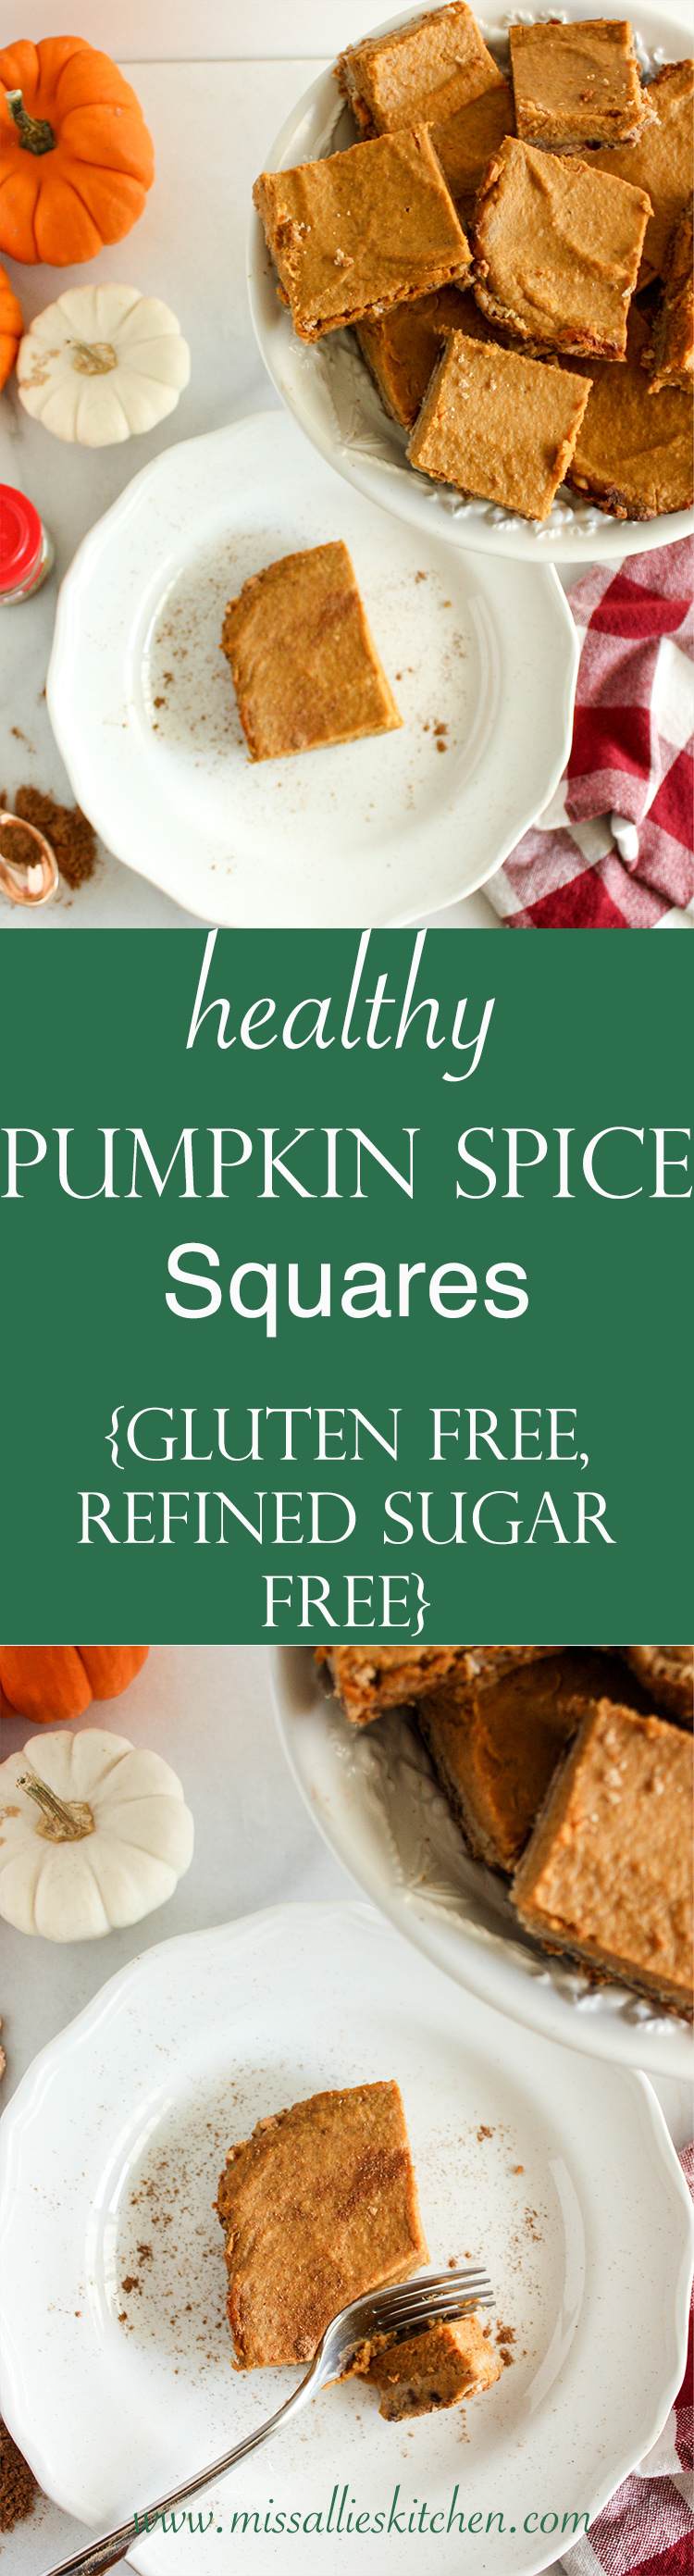 Healthy Pumpkin Spice Squares - Nutrient packed spin on a classic that is sure to be a family favorite!